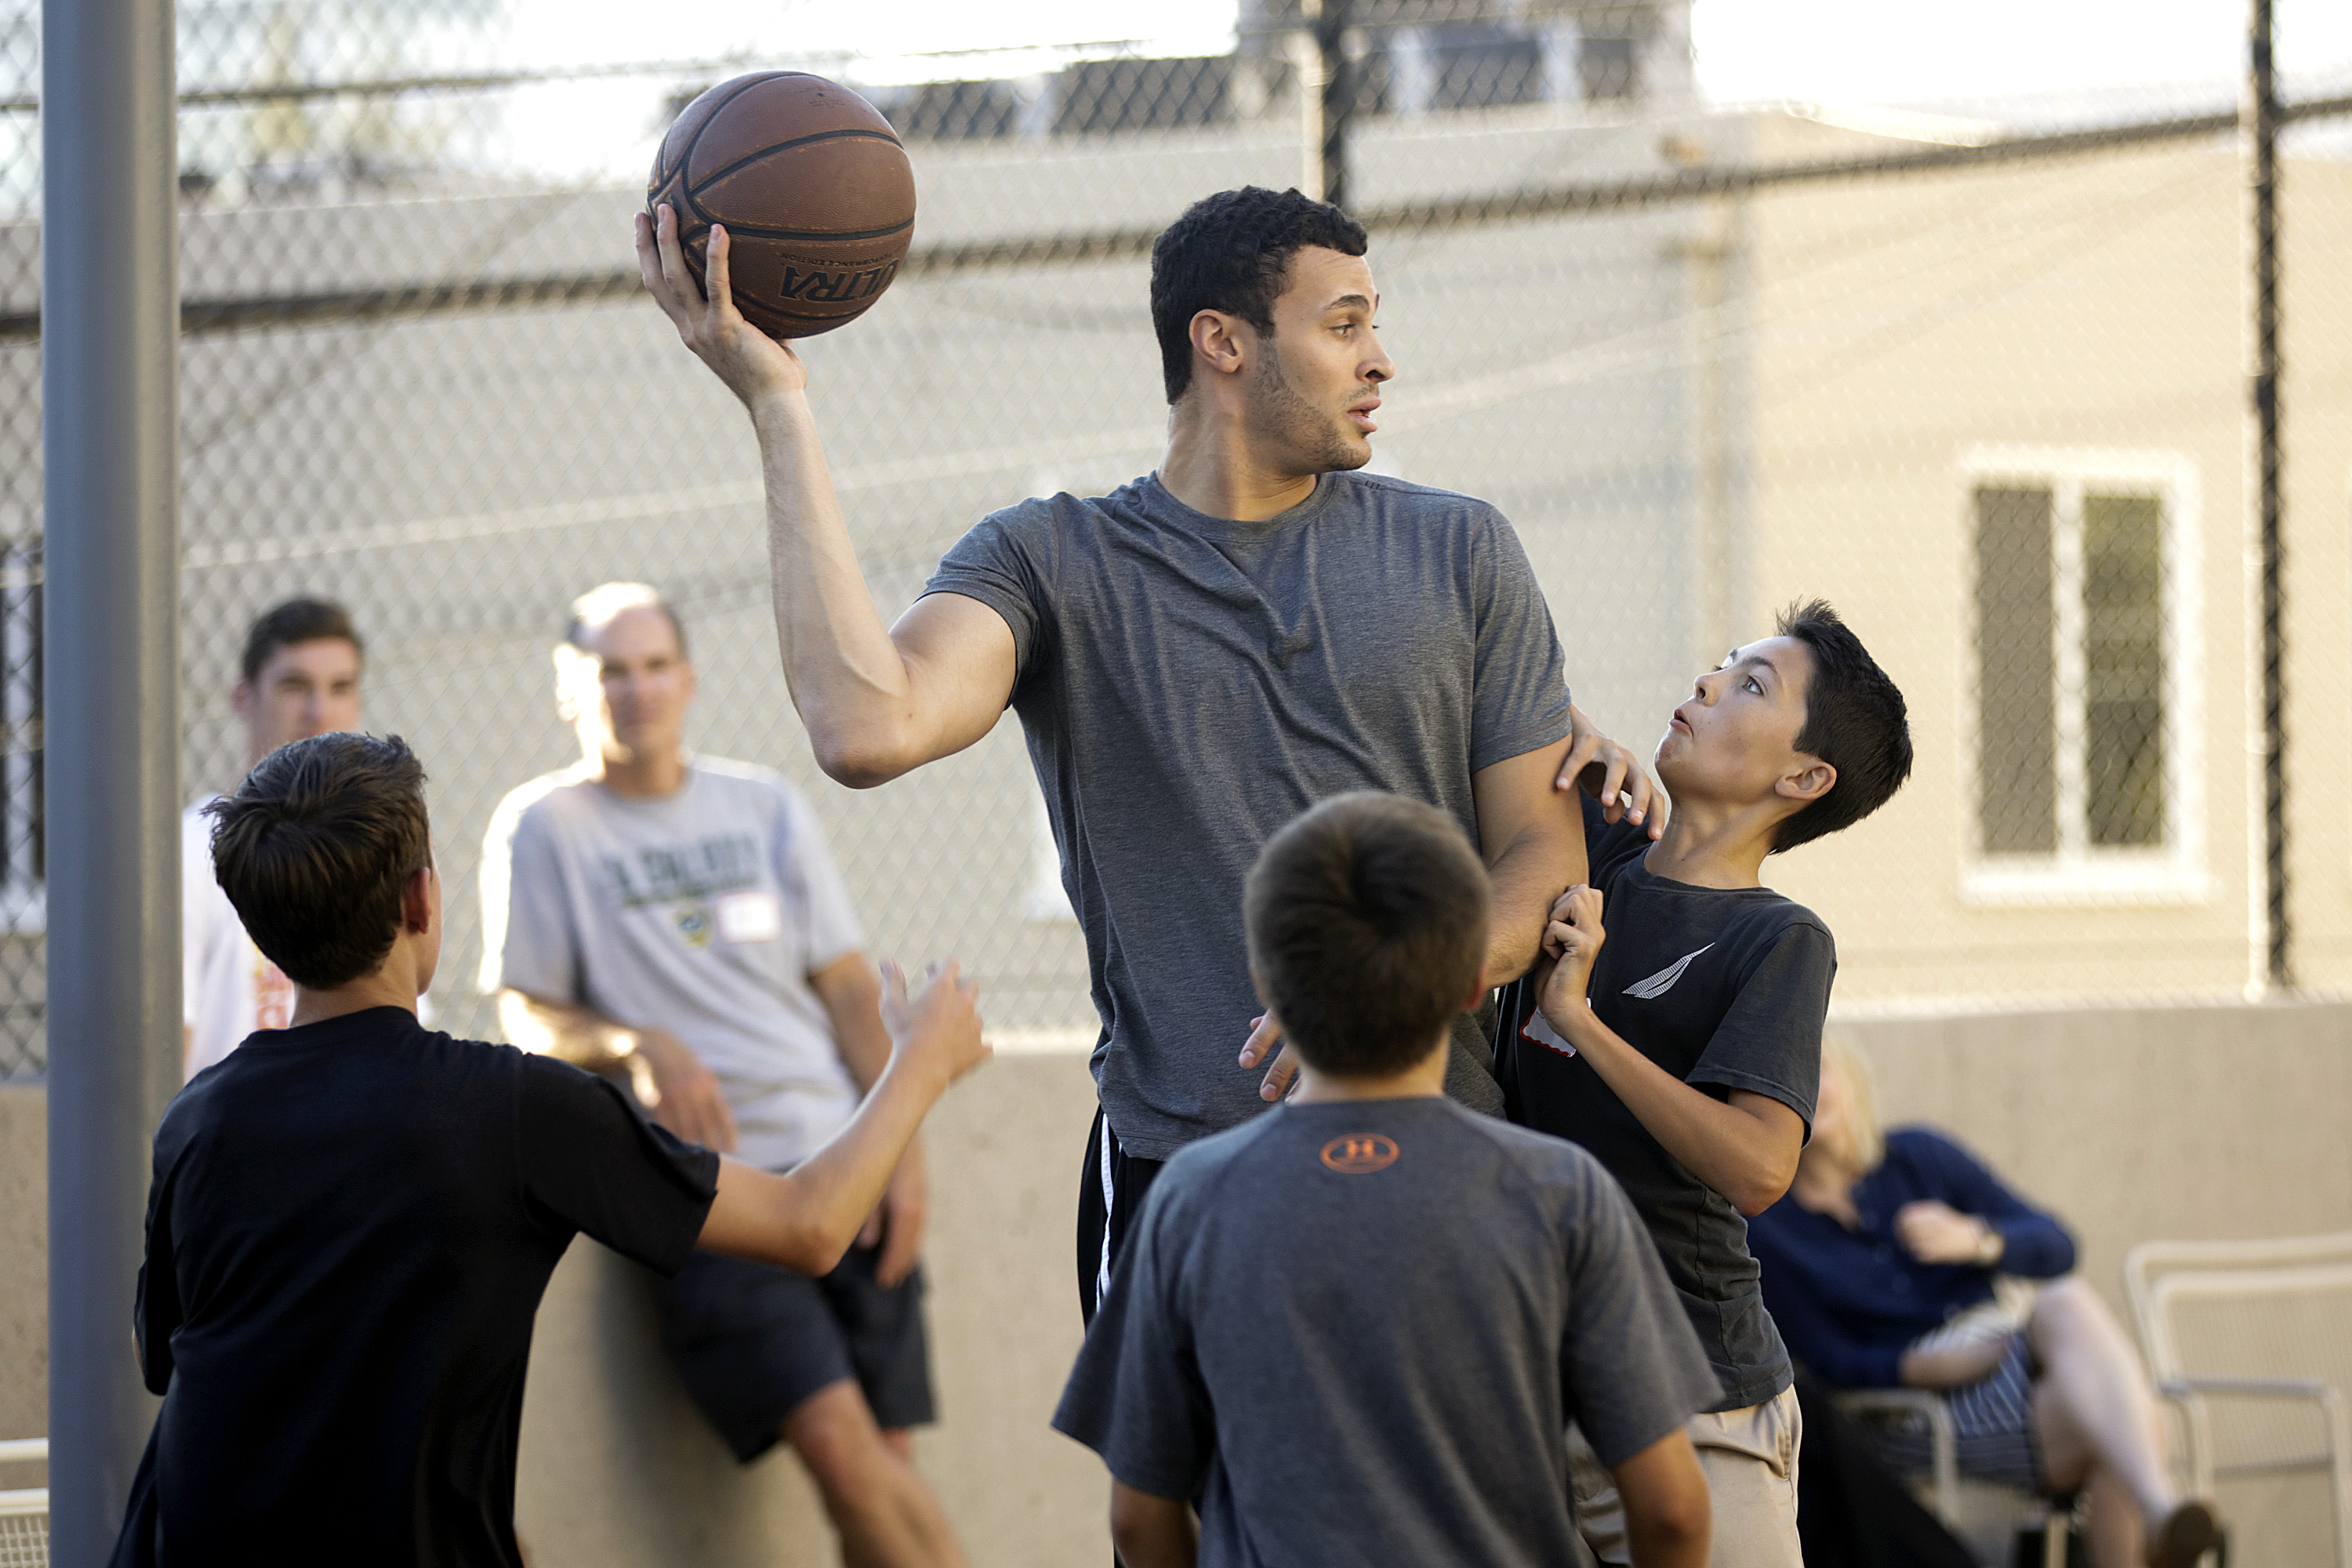 Lakers forward Larry Nance Jr. plays basketball with some patients at Cedars-Sinai Medical Center on Wednesday. Photo by: Cedars-Sinai